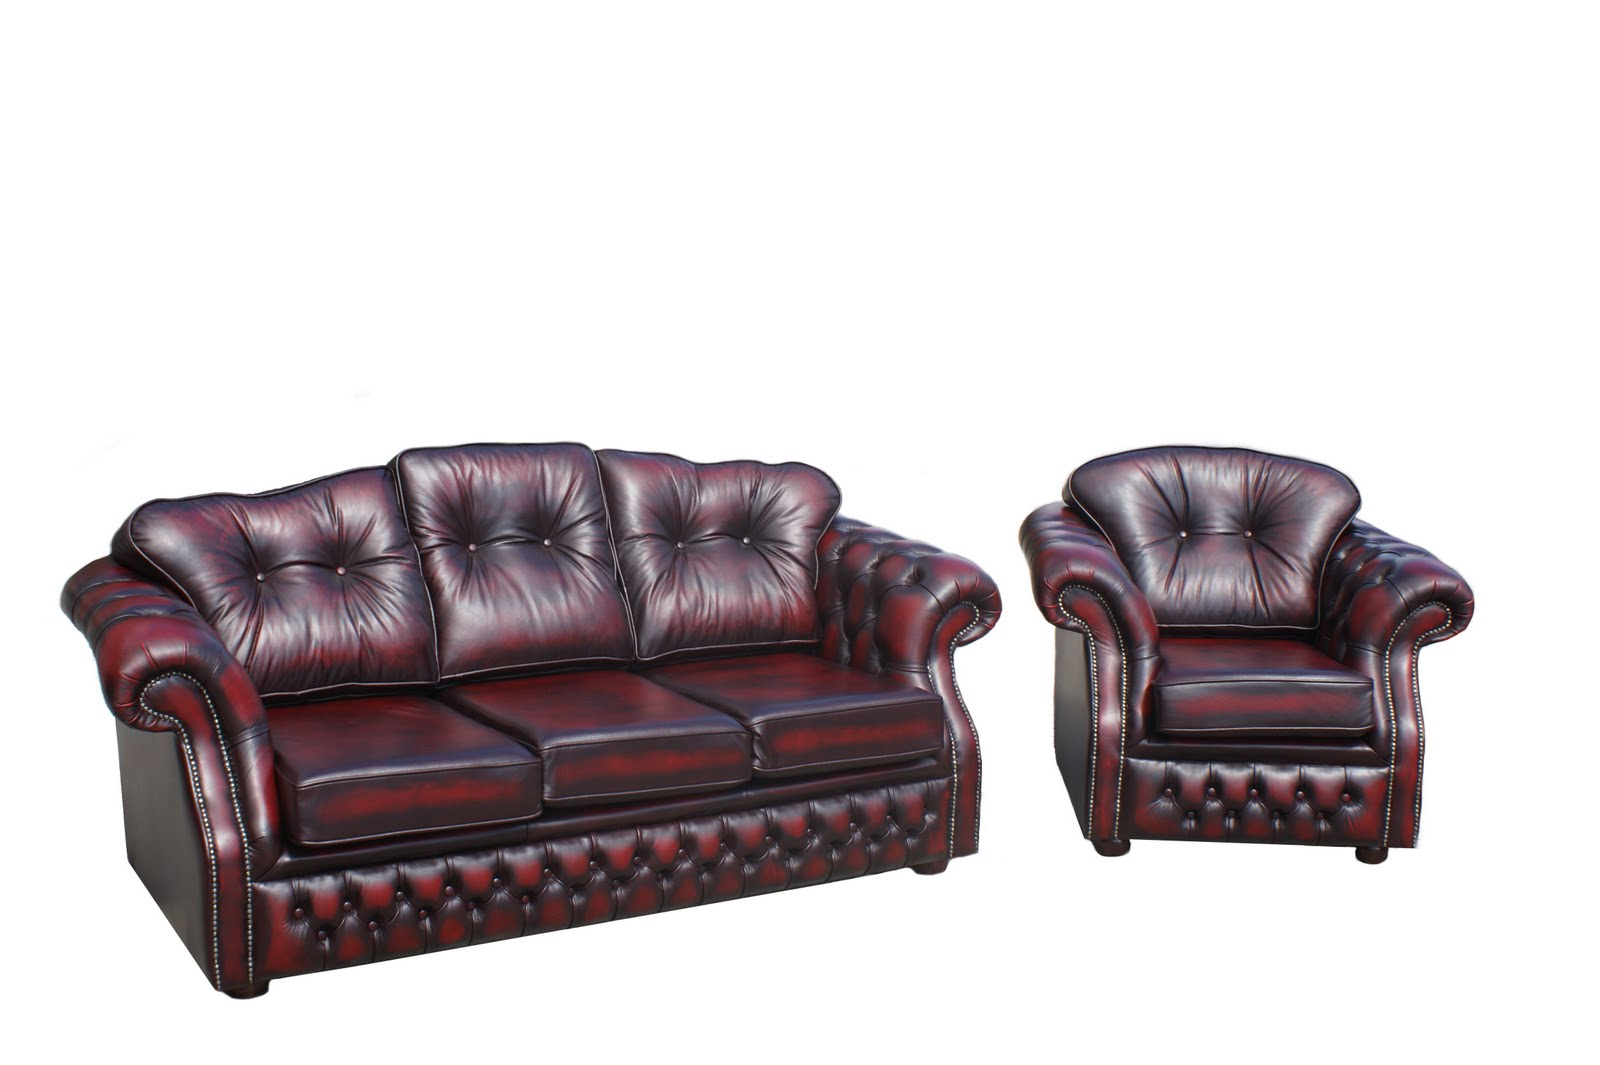 Chesterfield Sofa Price Chesterfield Sofa Clearance Chesterfeld TheSofa